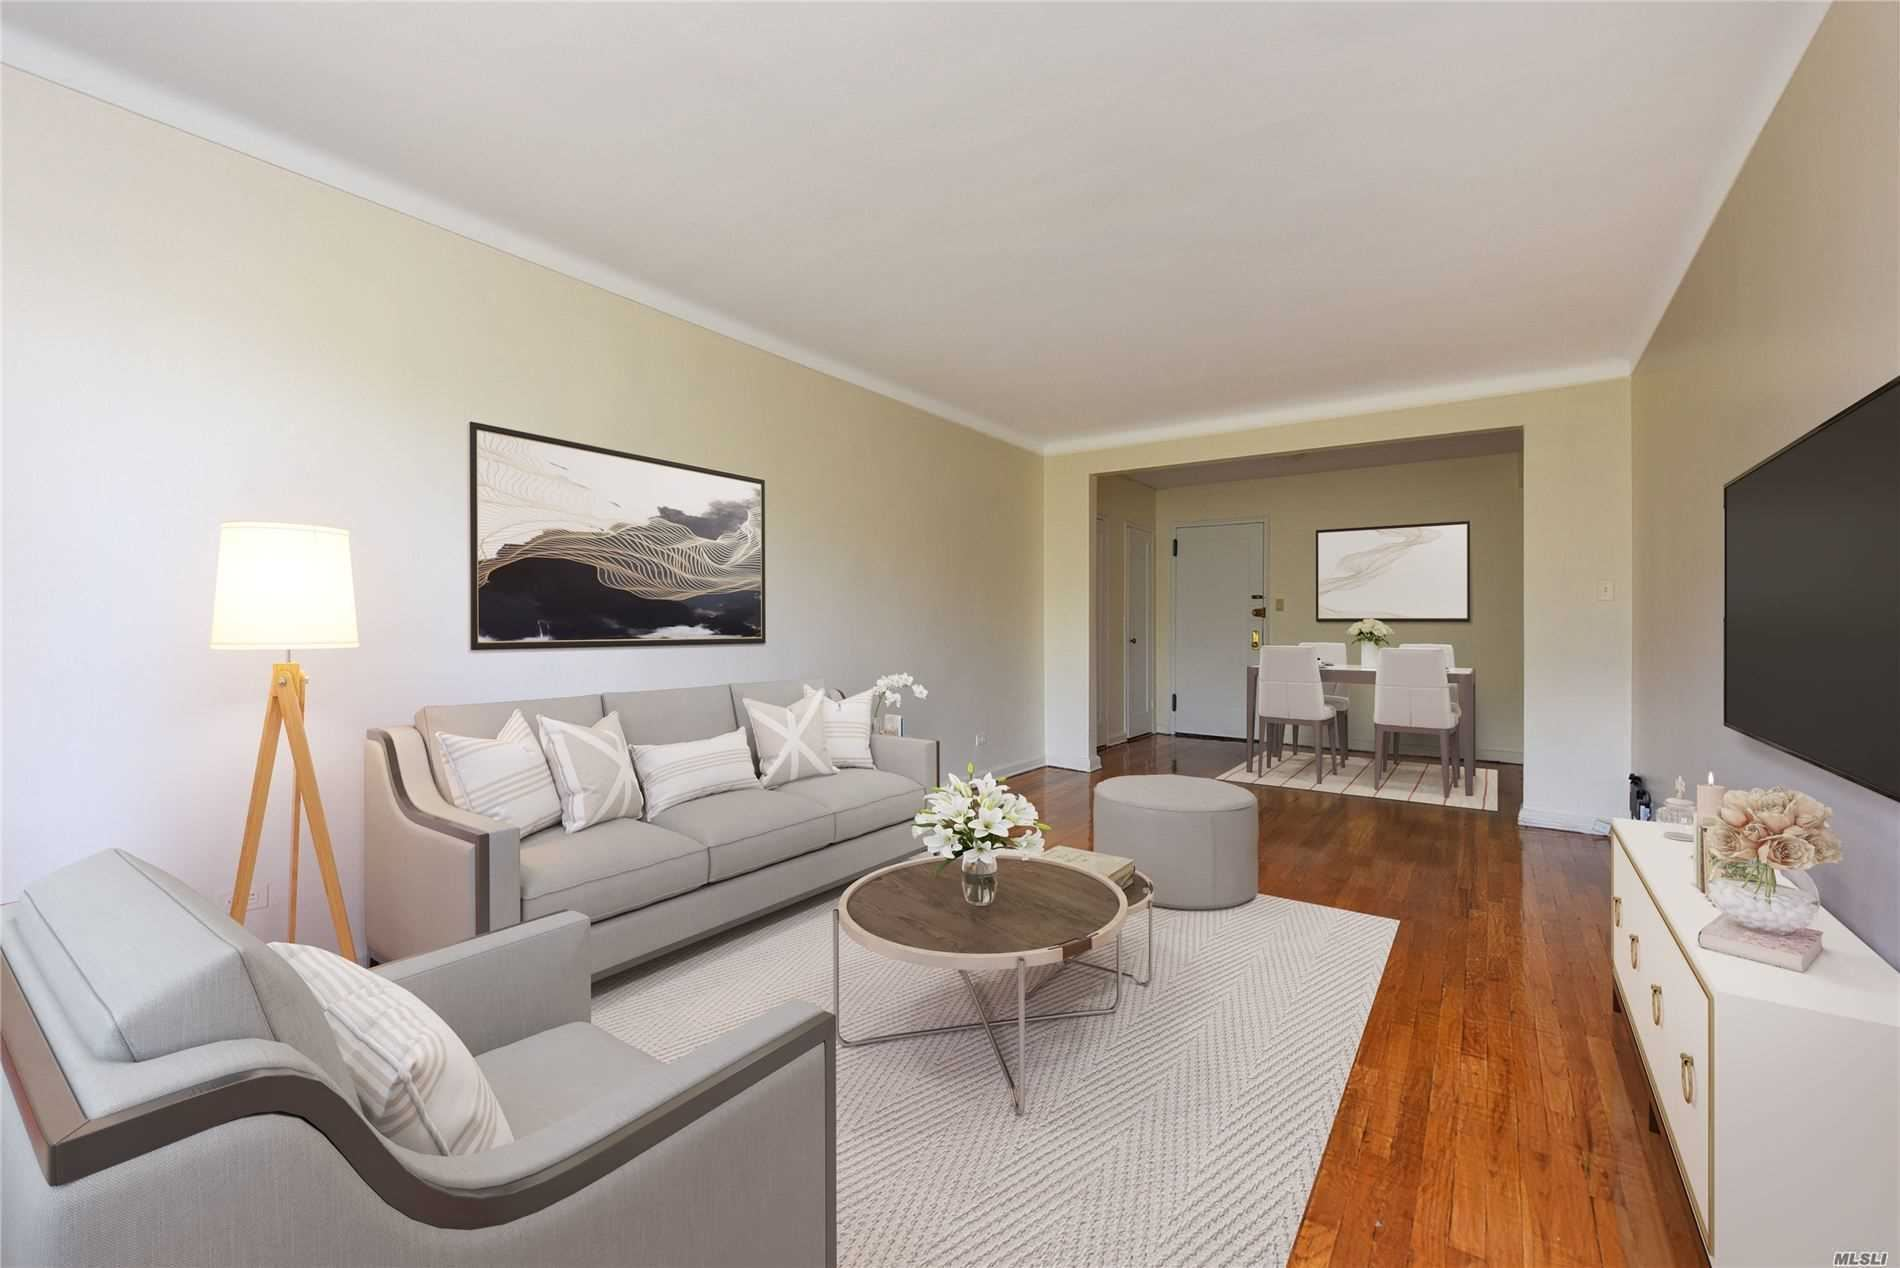 67-12 Yellowstone Boulevard #E6, Forest Hills, NY 11375 - MLS#: 3200628